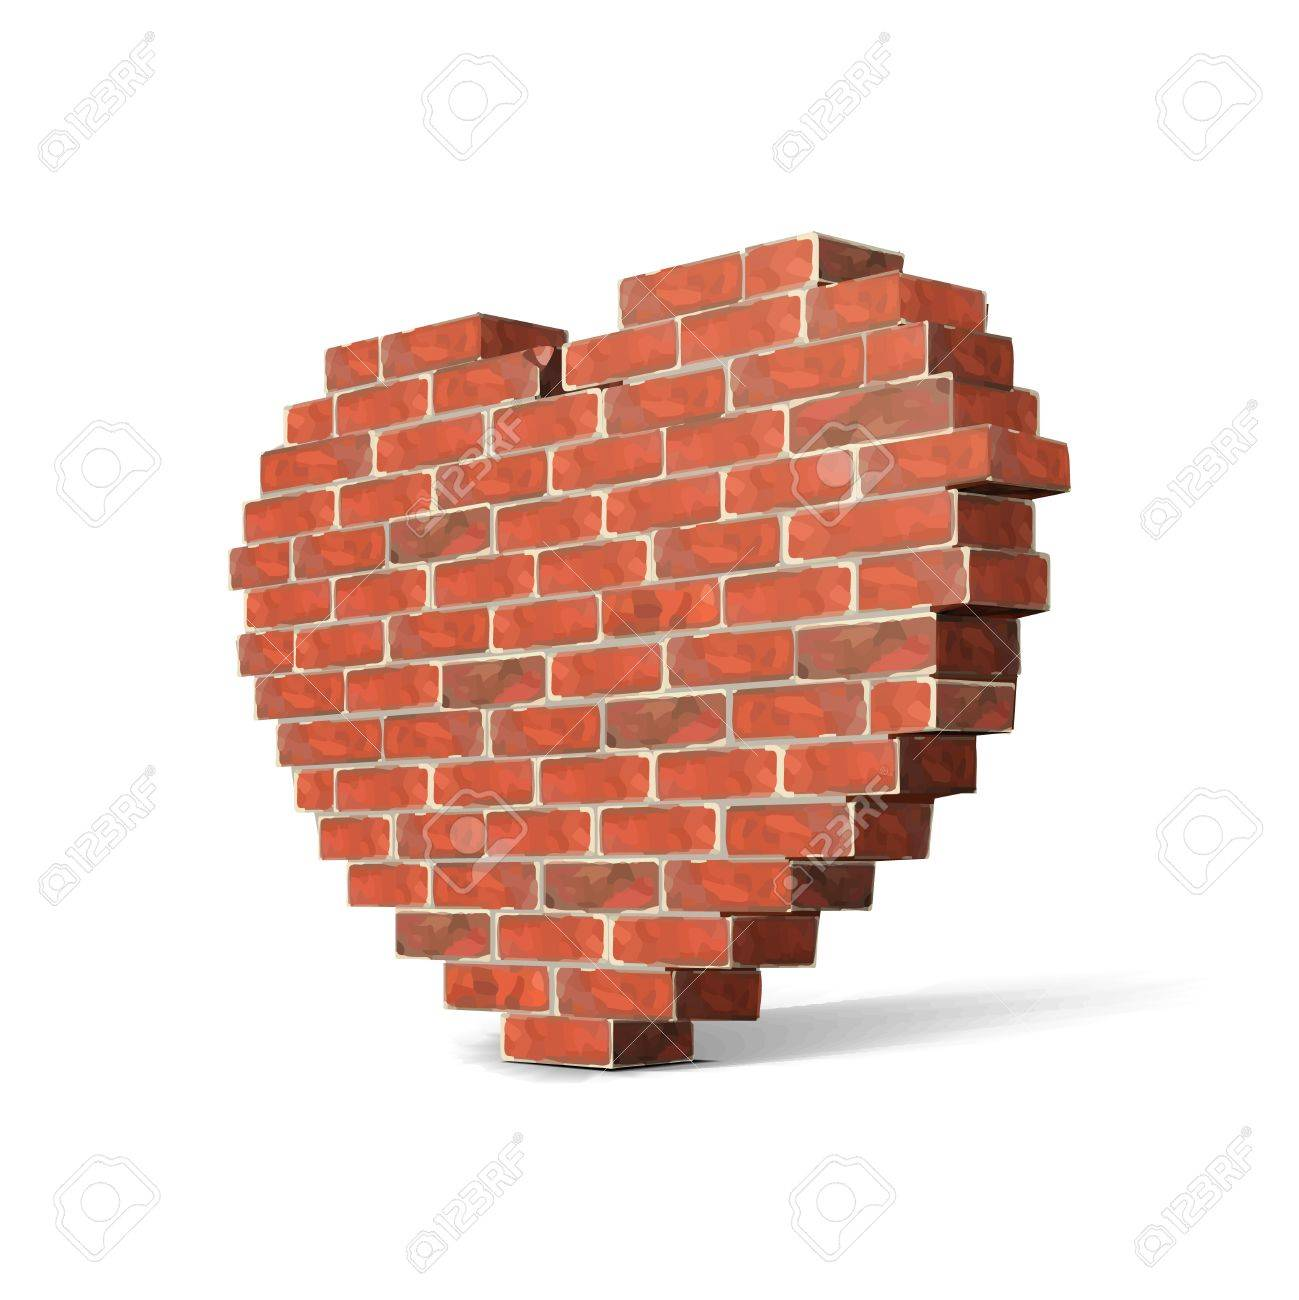 Valentine s Day Brick Wall Like Heart Isolated On White Background  Vector Stock Vector - 17467013